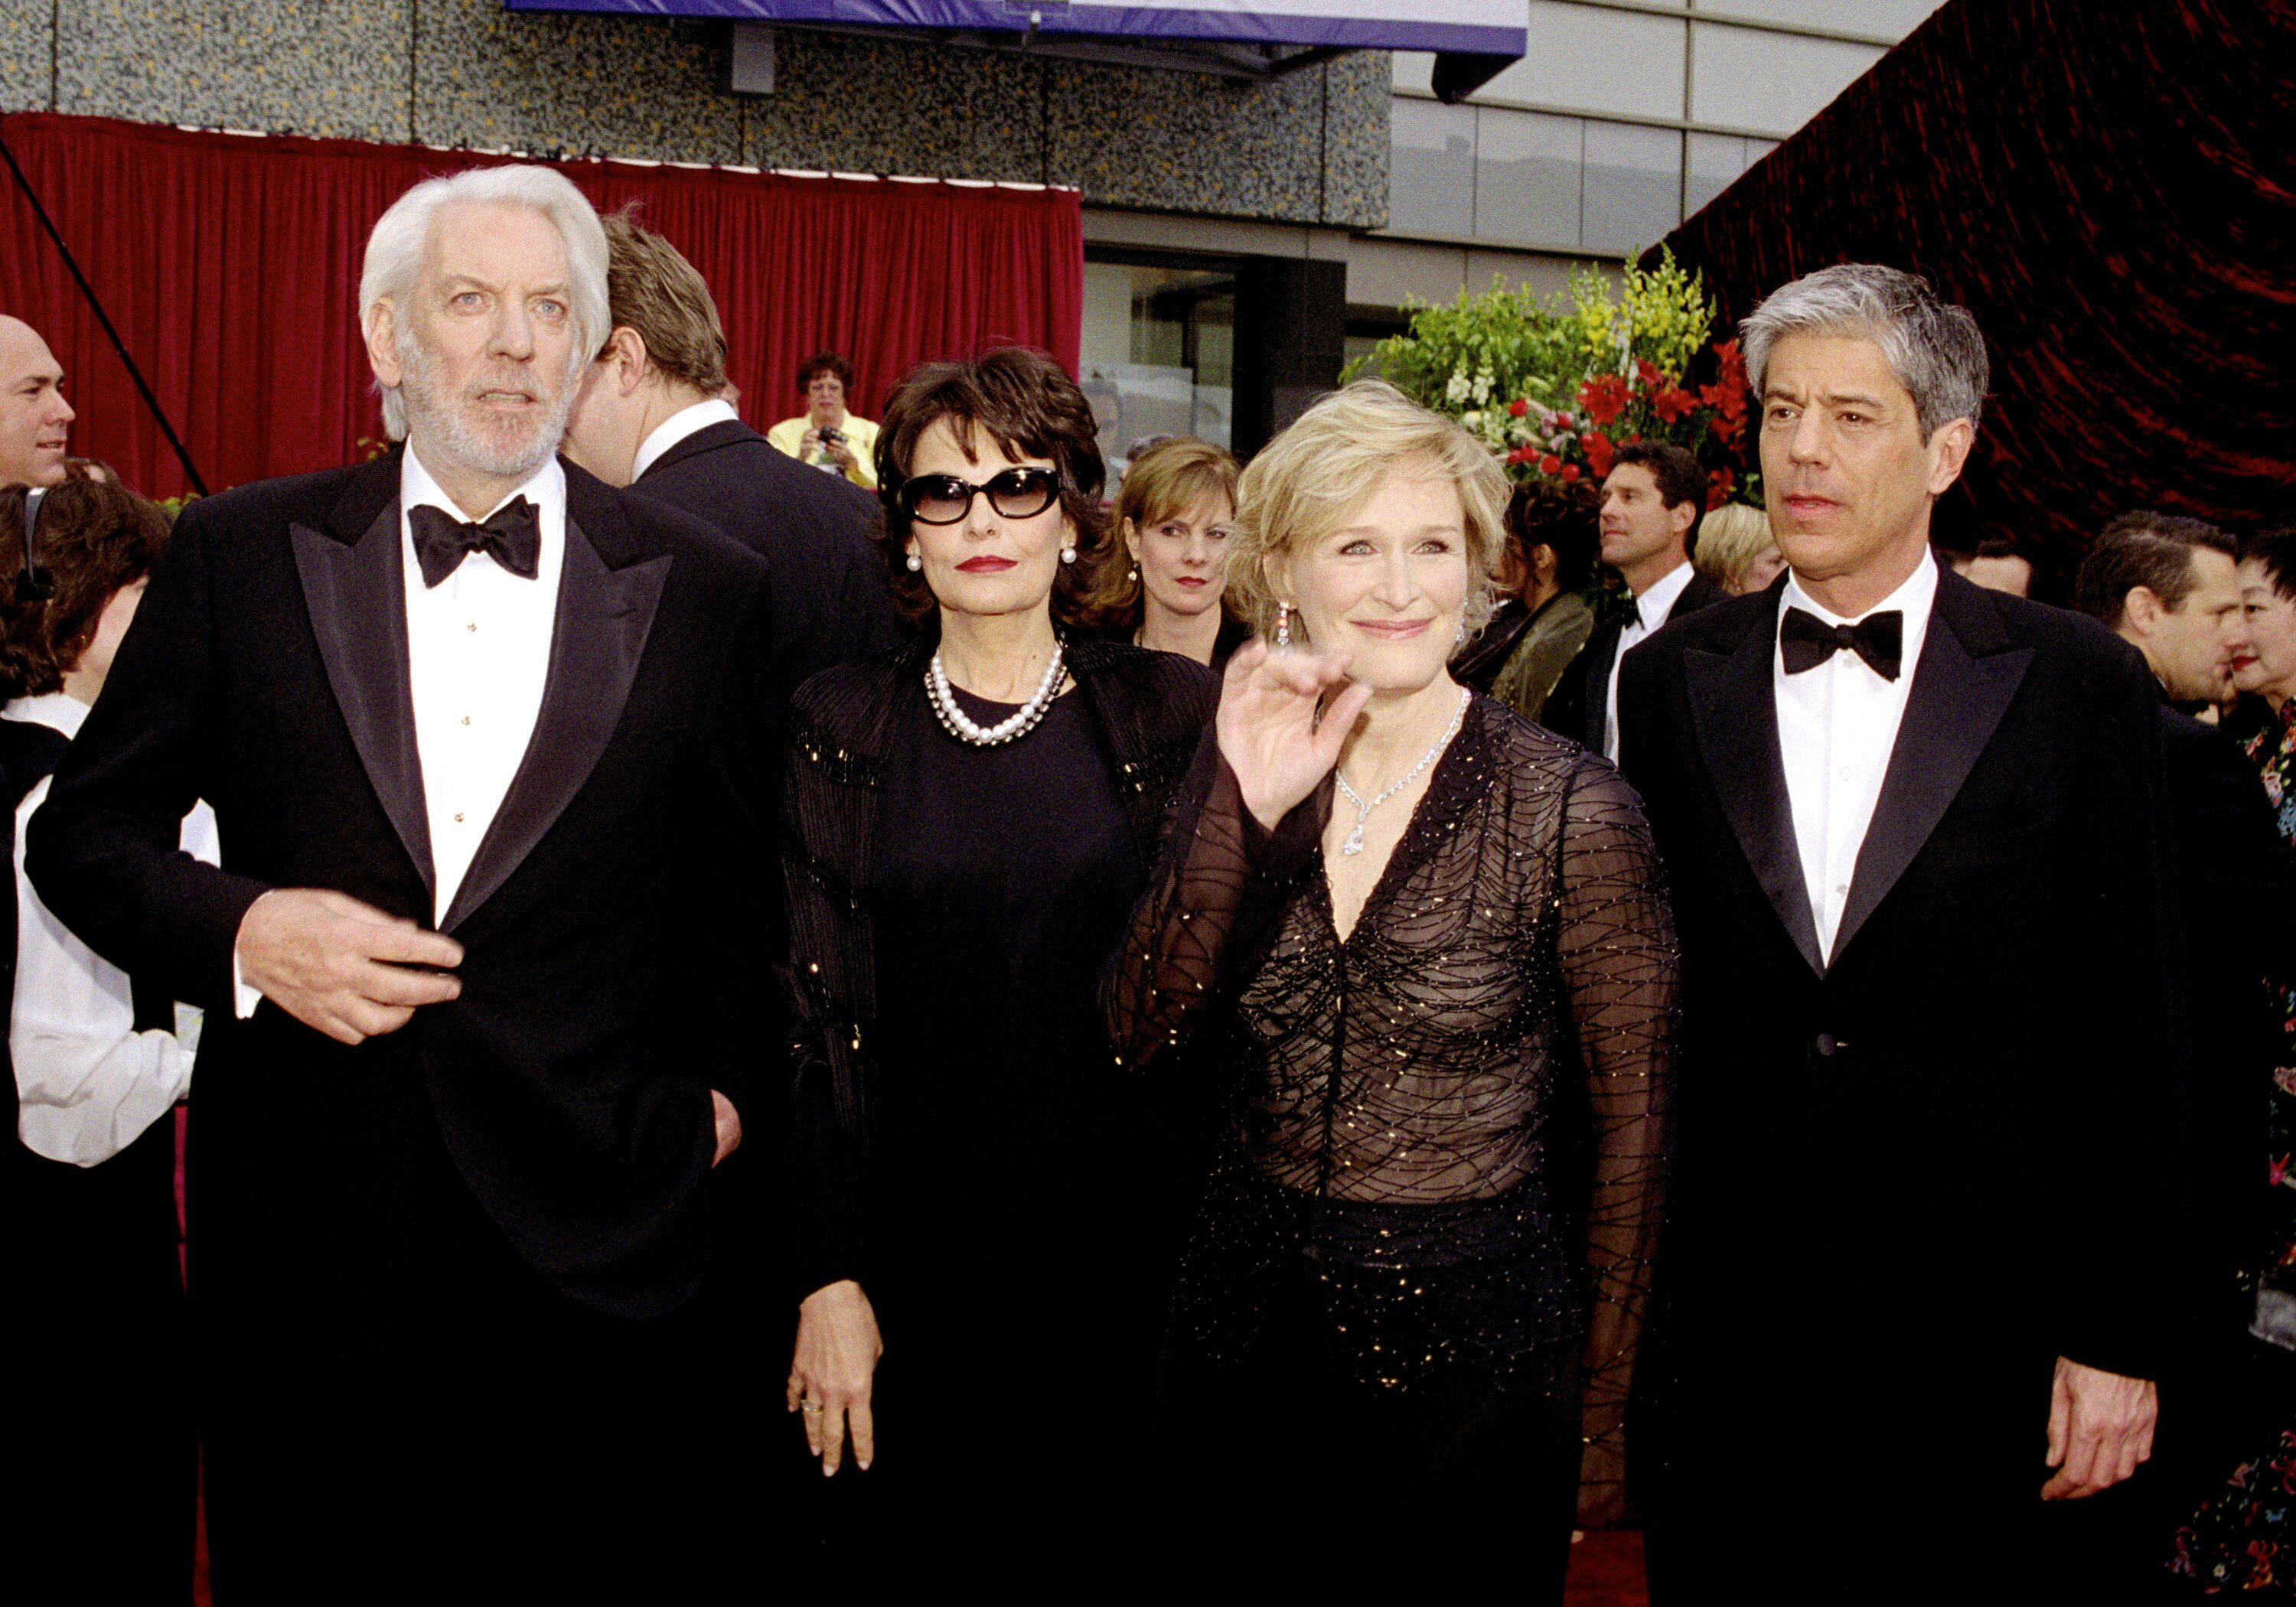 Donald Sutherland (left), Glenn Close (third from left) and escorts arrive.